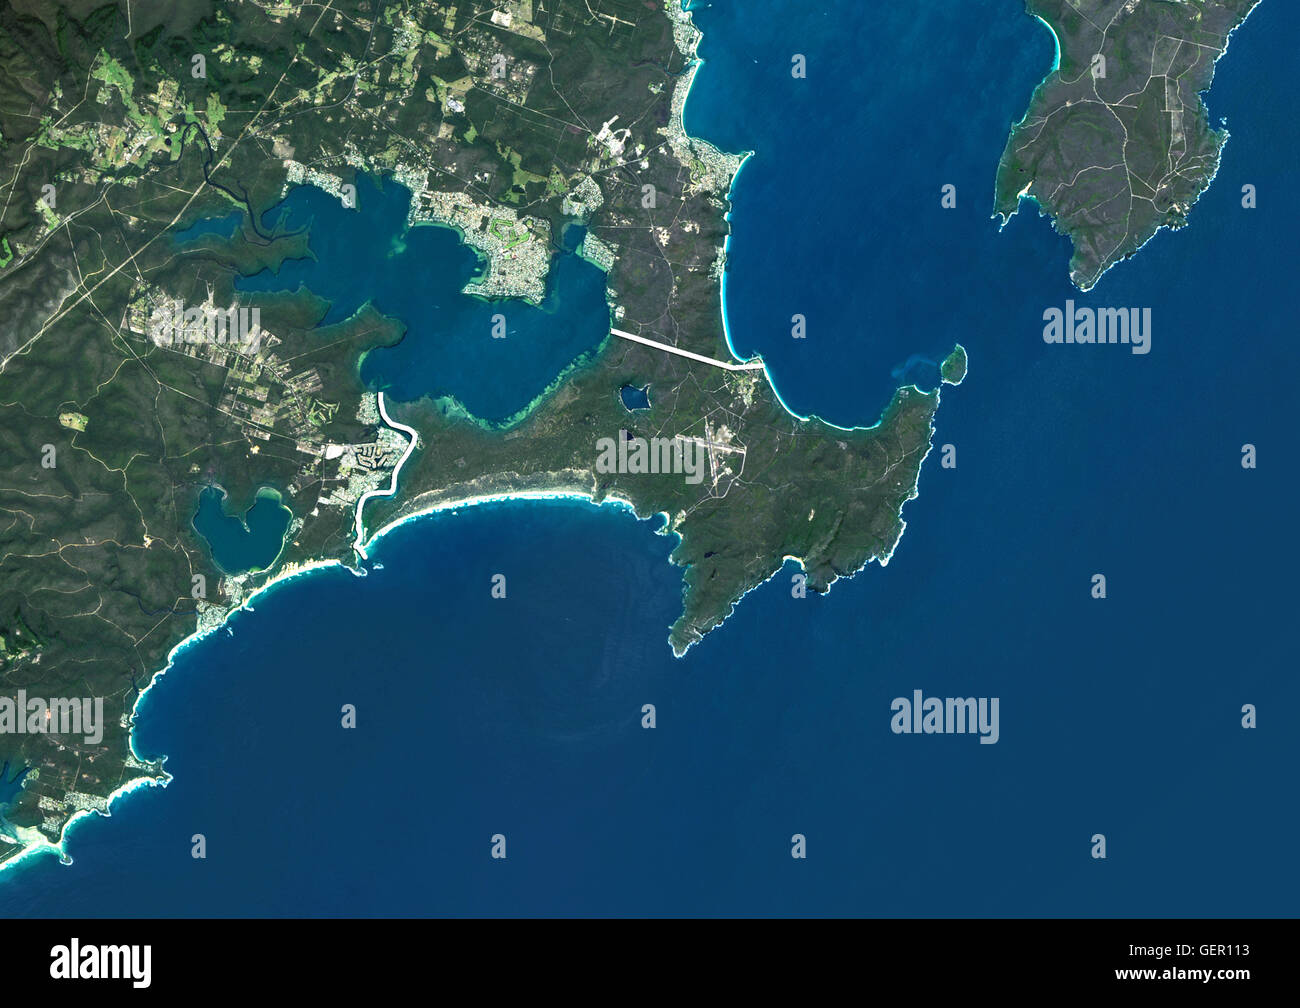 Australia Map Jervis Bay.Satellite View Of Jervis Bay Territory Australia With